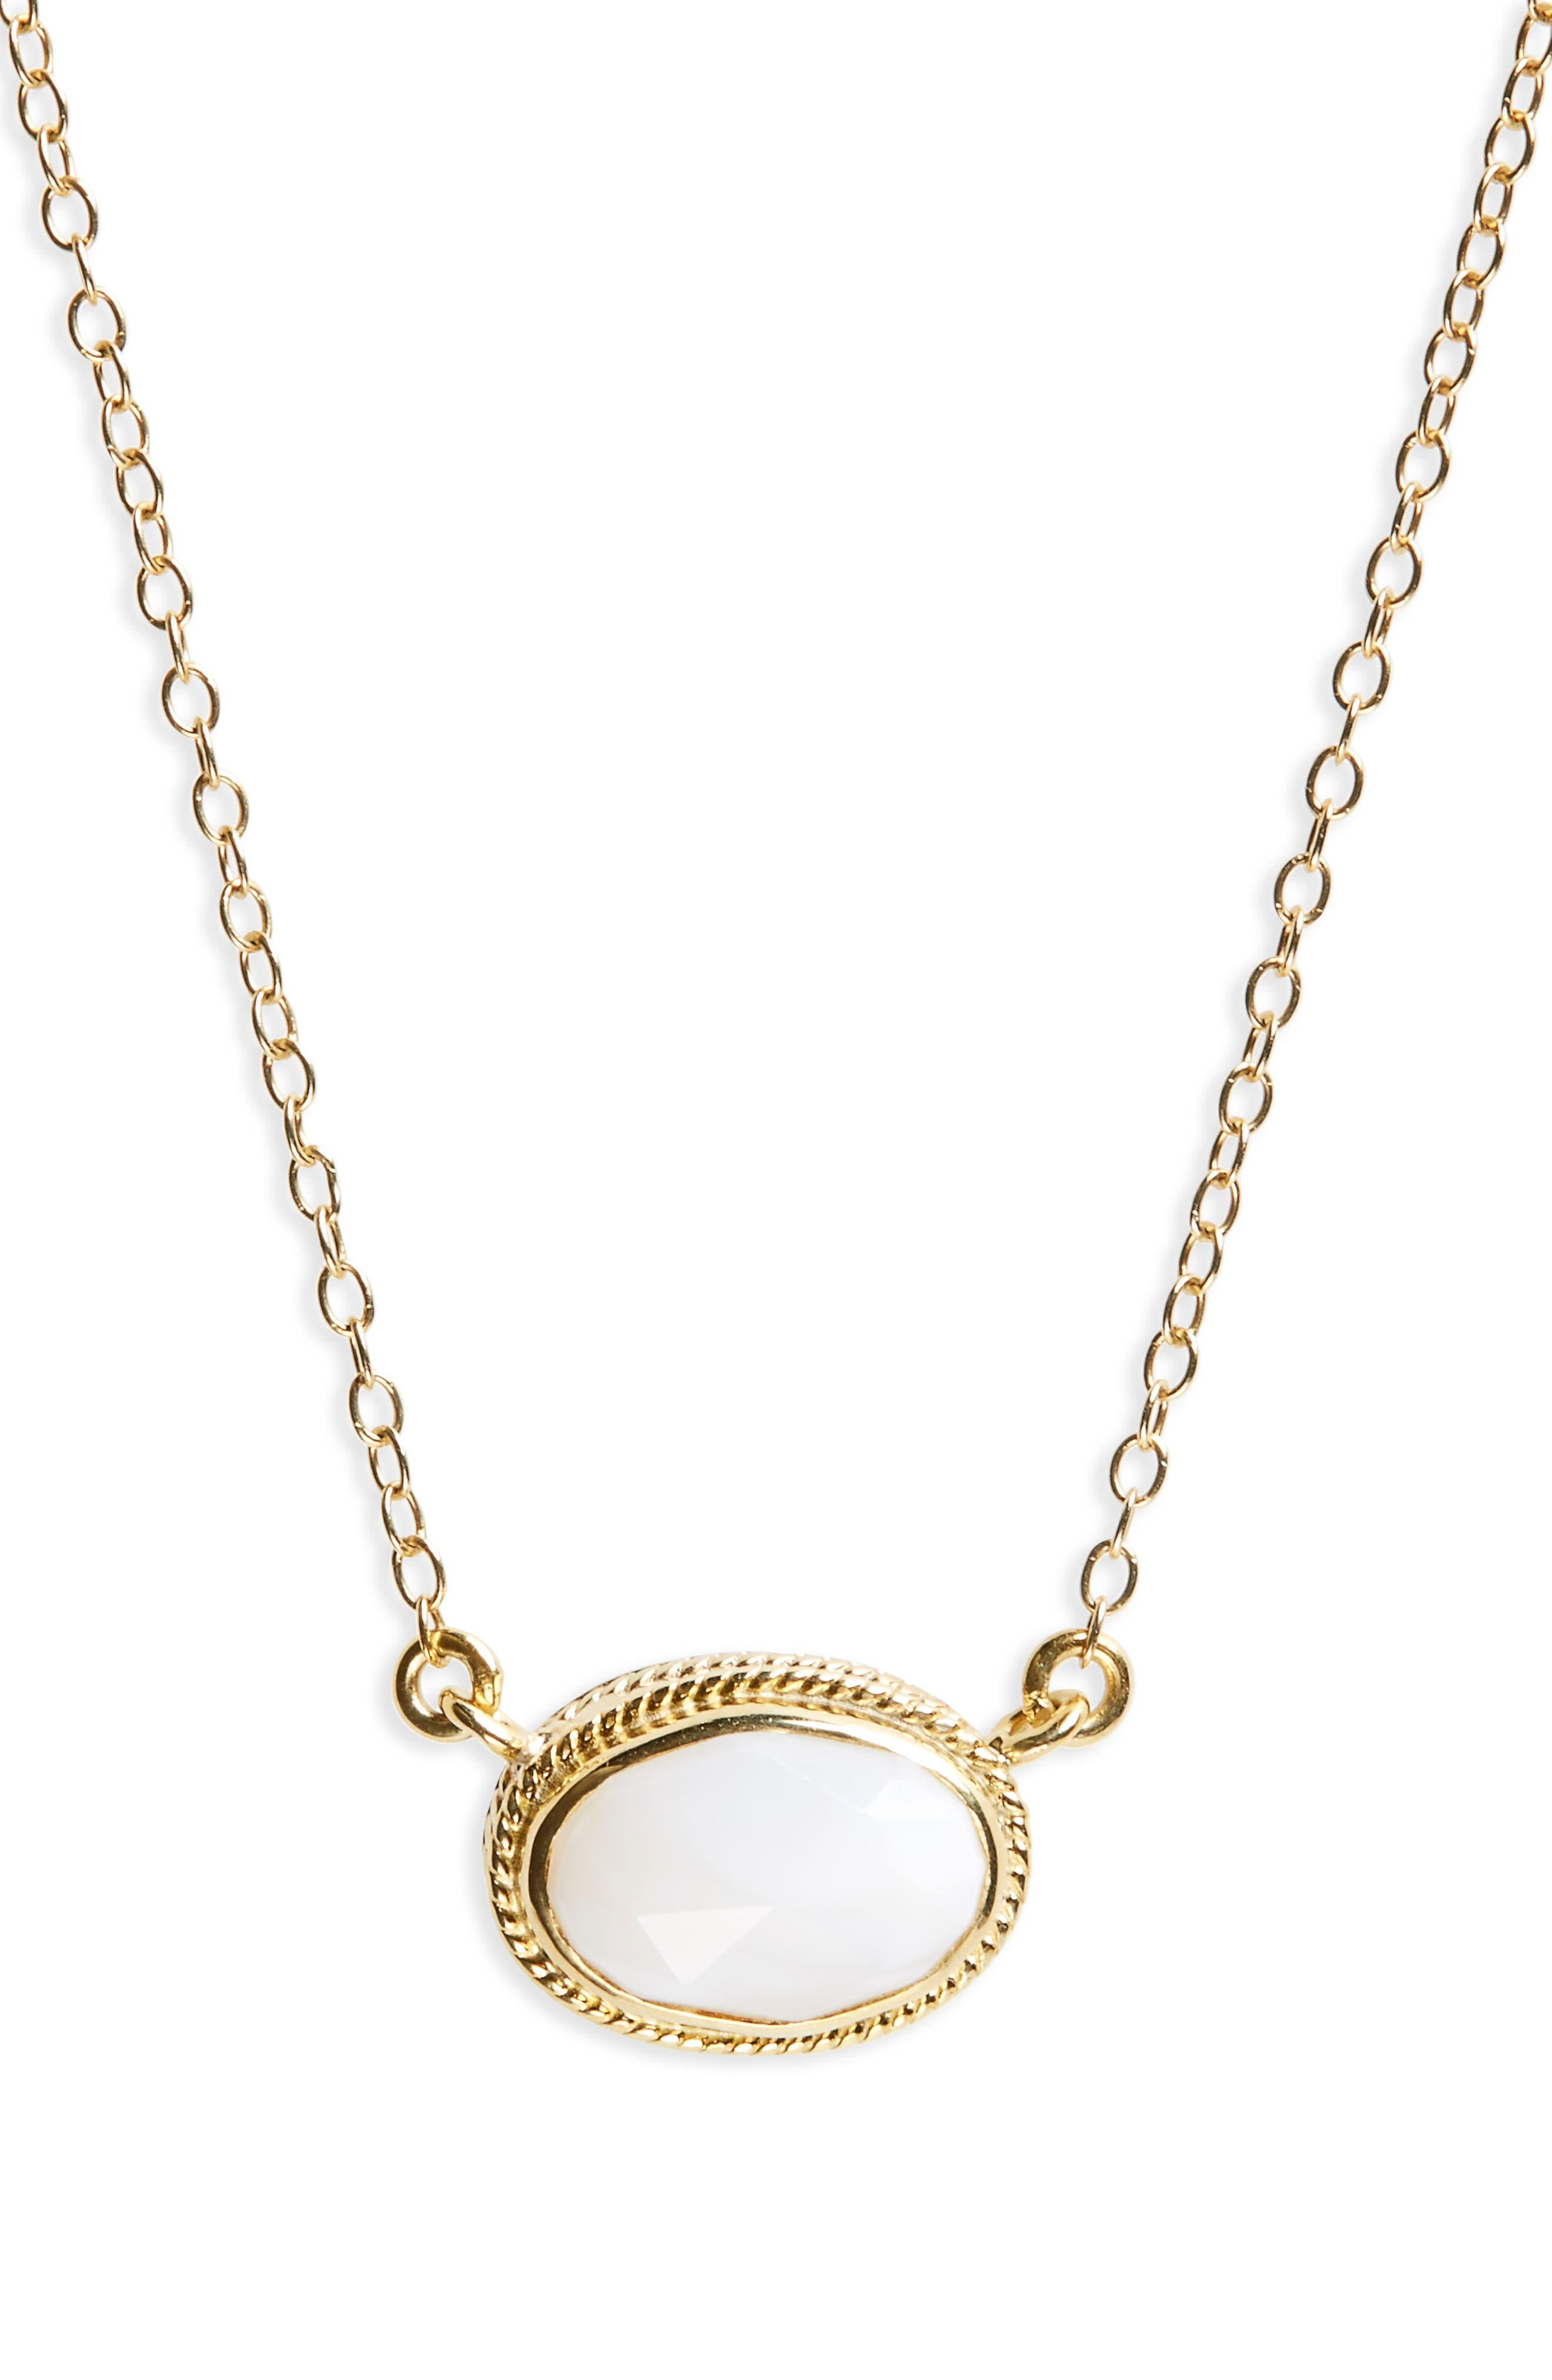 Main Image - Anna Beck White Opal Pendant Necklace